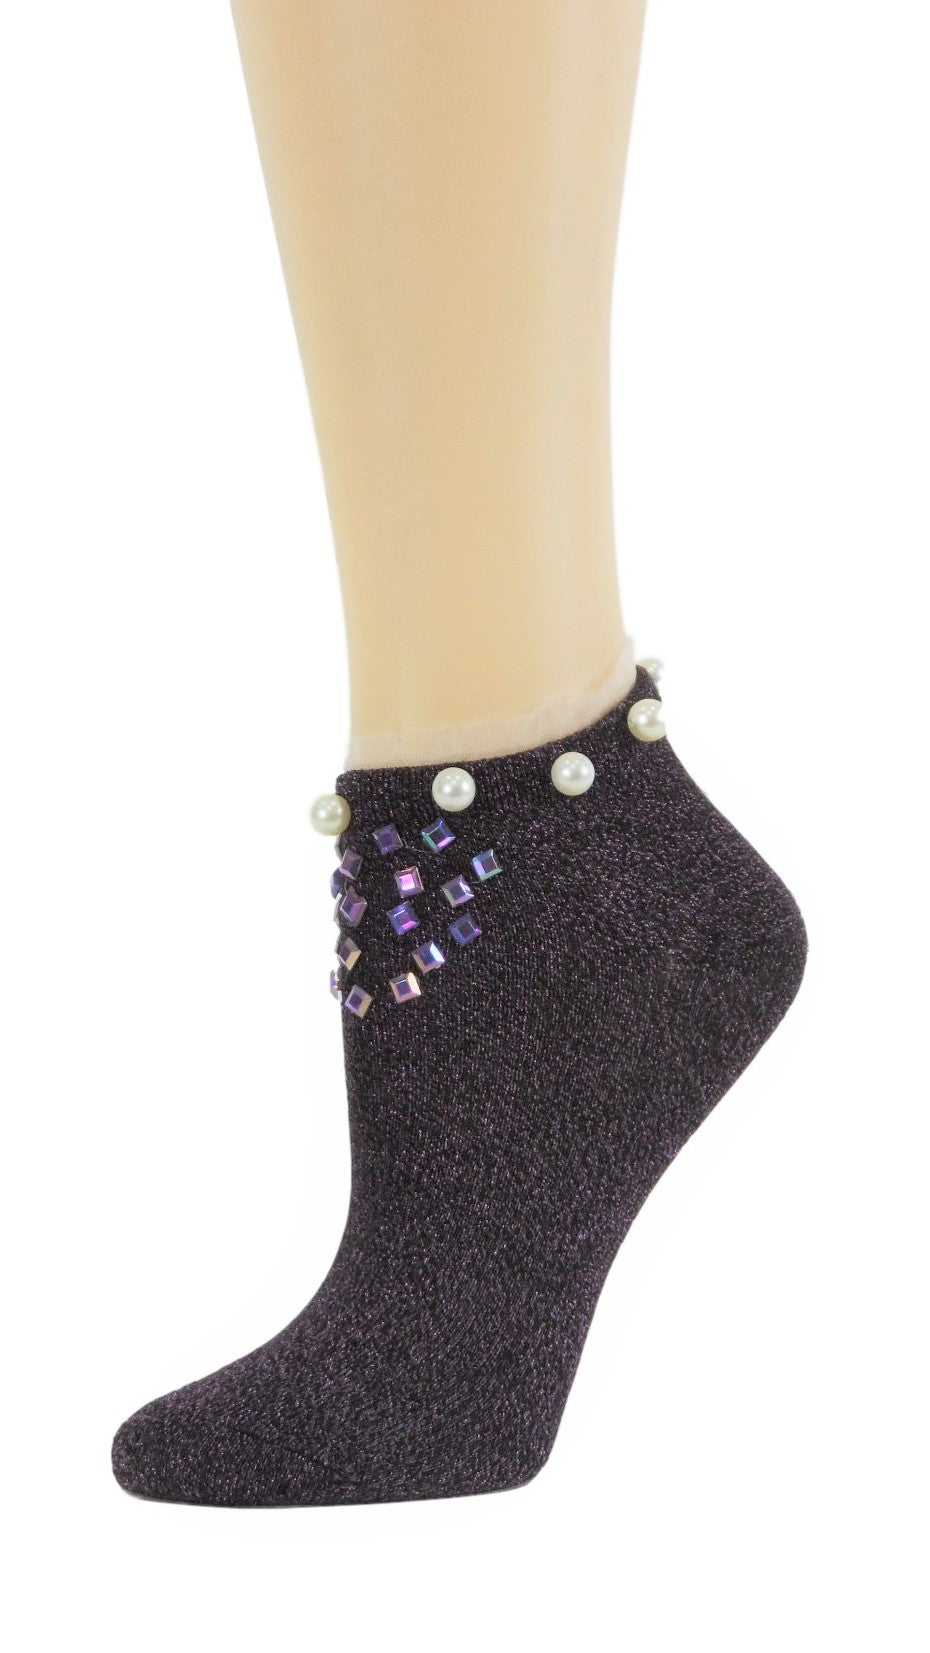 Stunning Purple Custom Ankle Socks with crystals